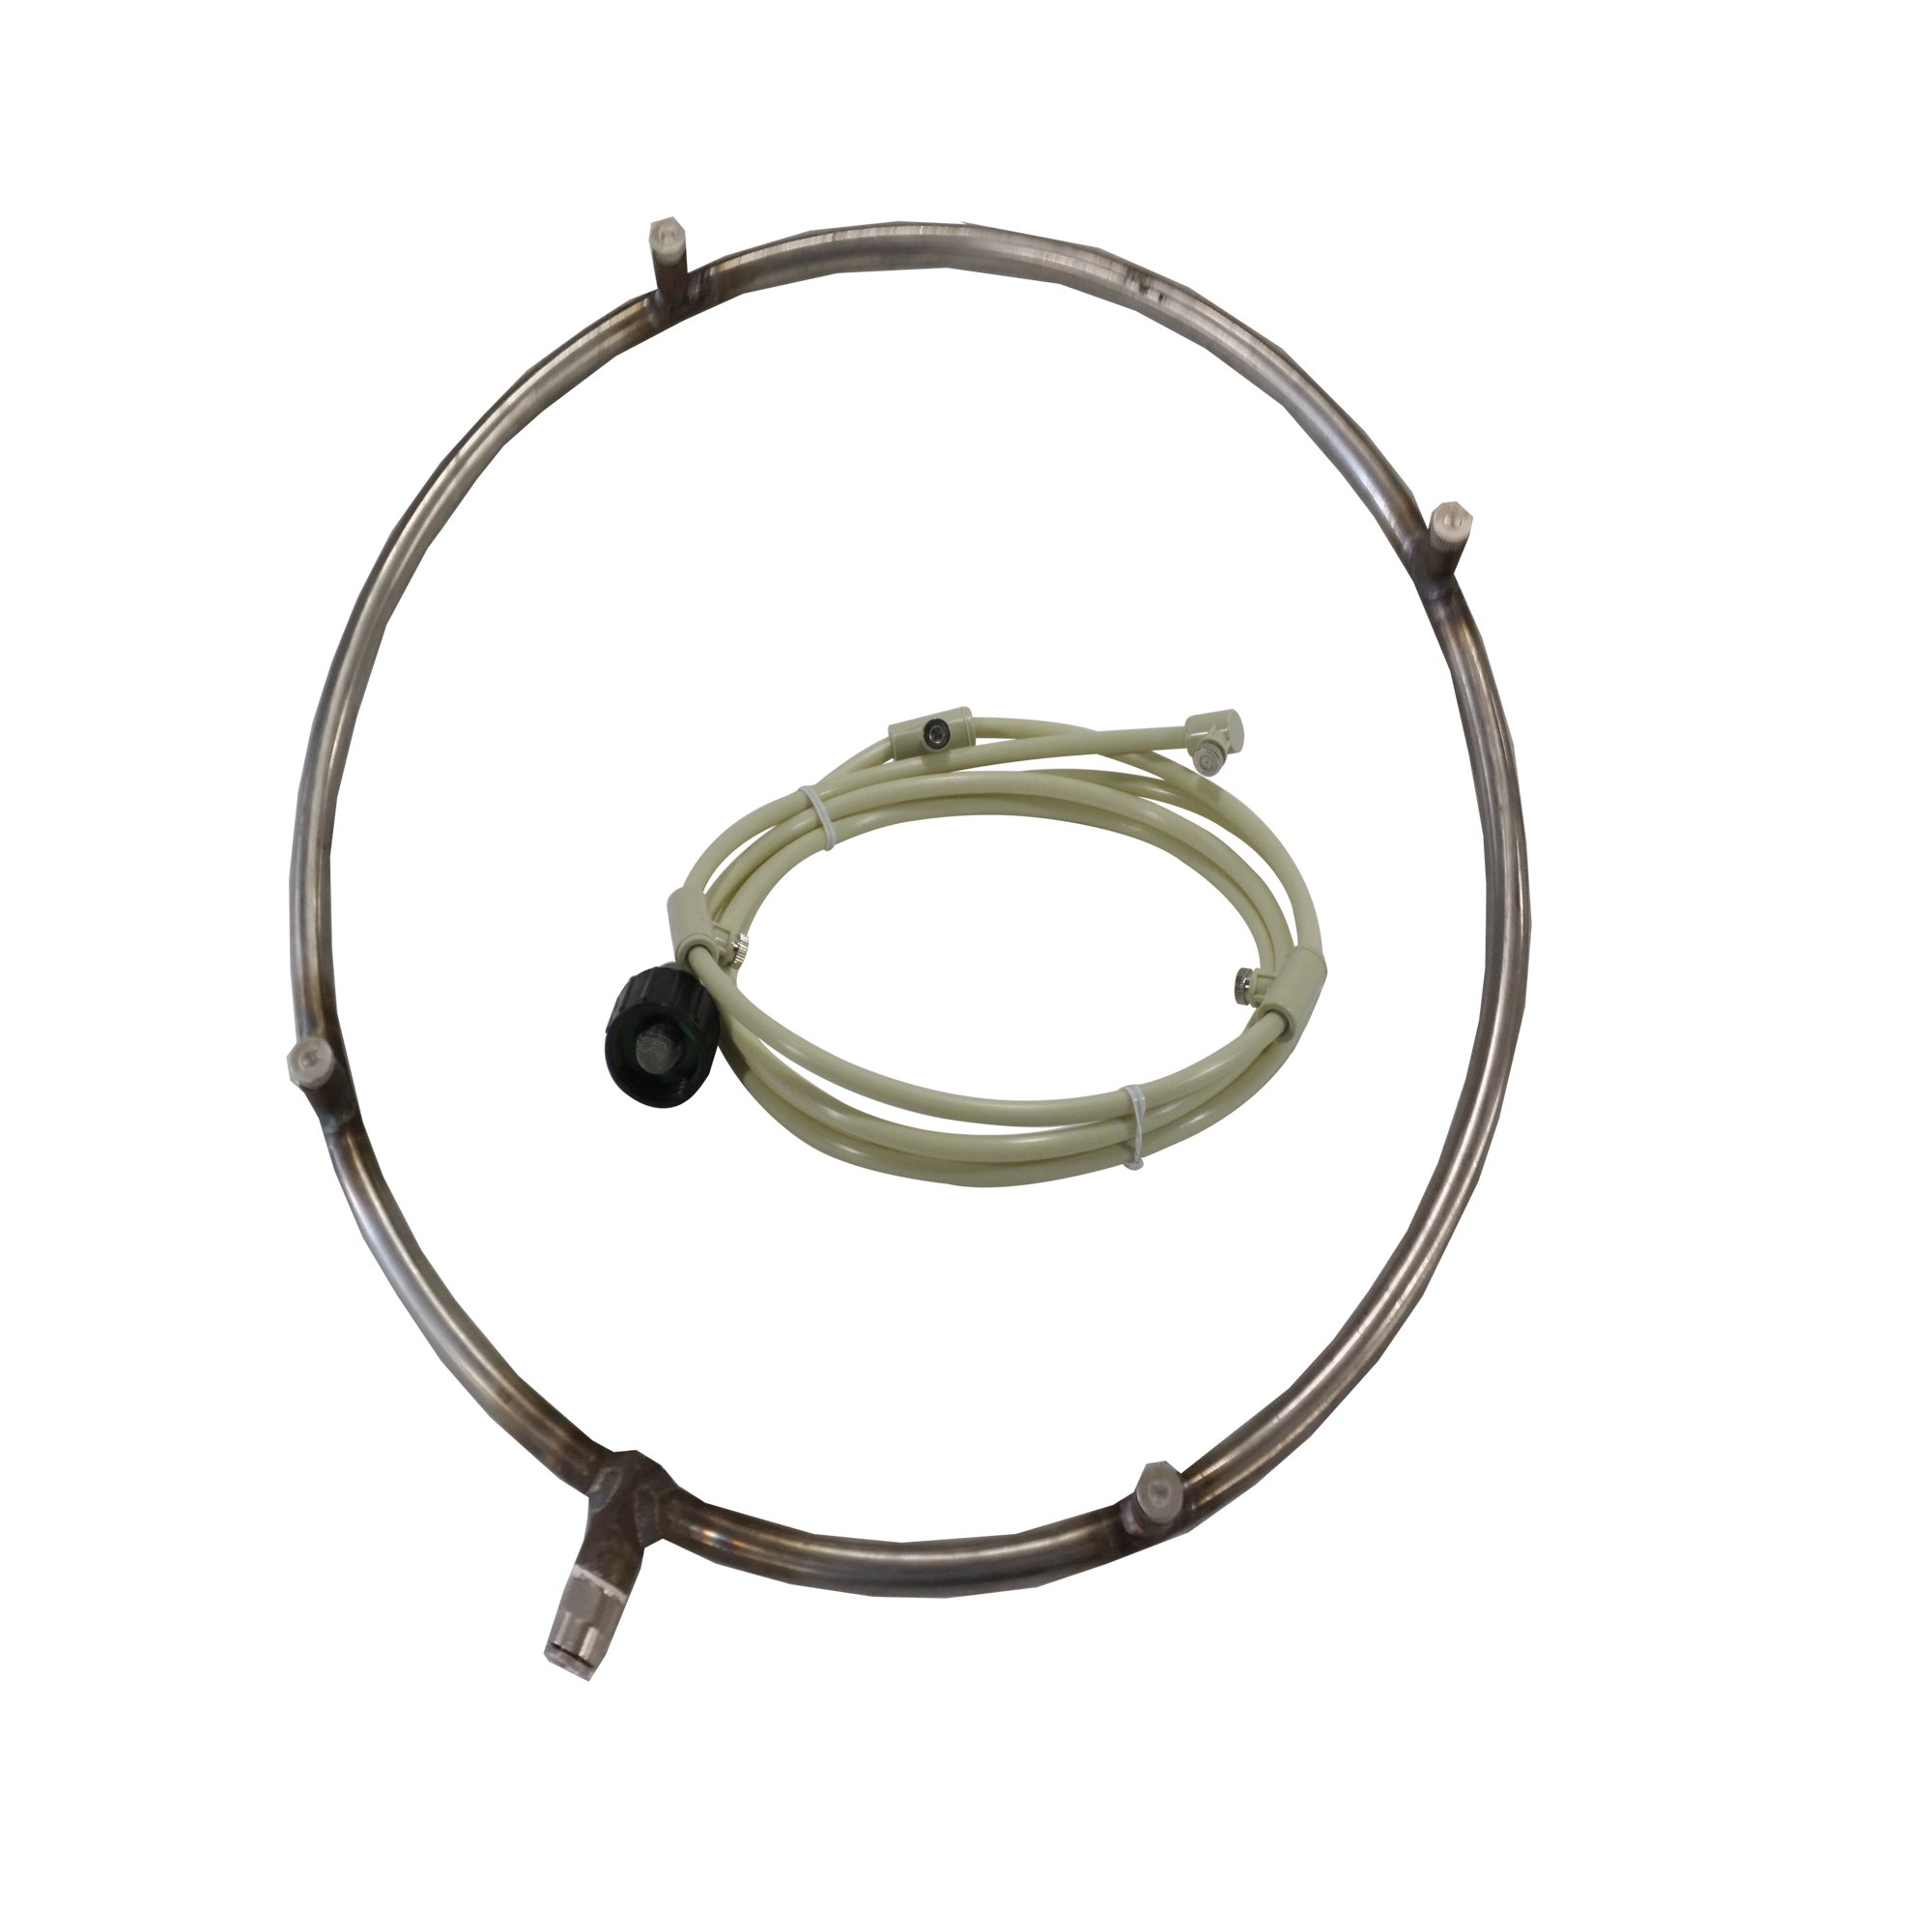 mistcooling - Fan Mist Kit - Low Pressure Misting Ring - DIY Fan Mist Ring with Brass/Stainless Steel Nozzles (Mist Fan Ring - Stainless Steel - 12 Inch Diameter) by mistcooling